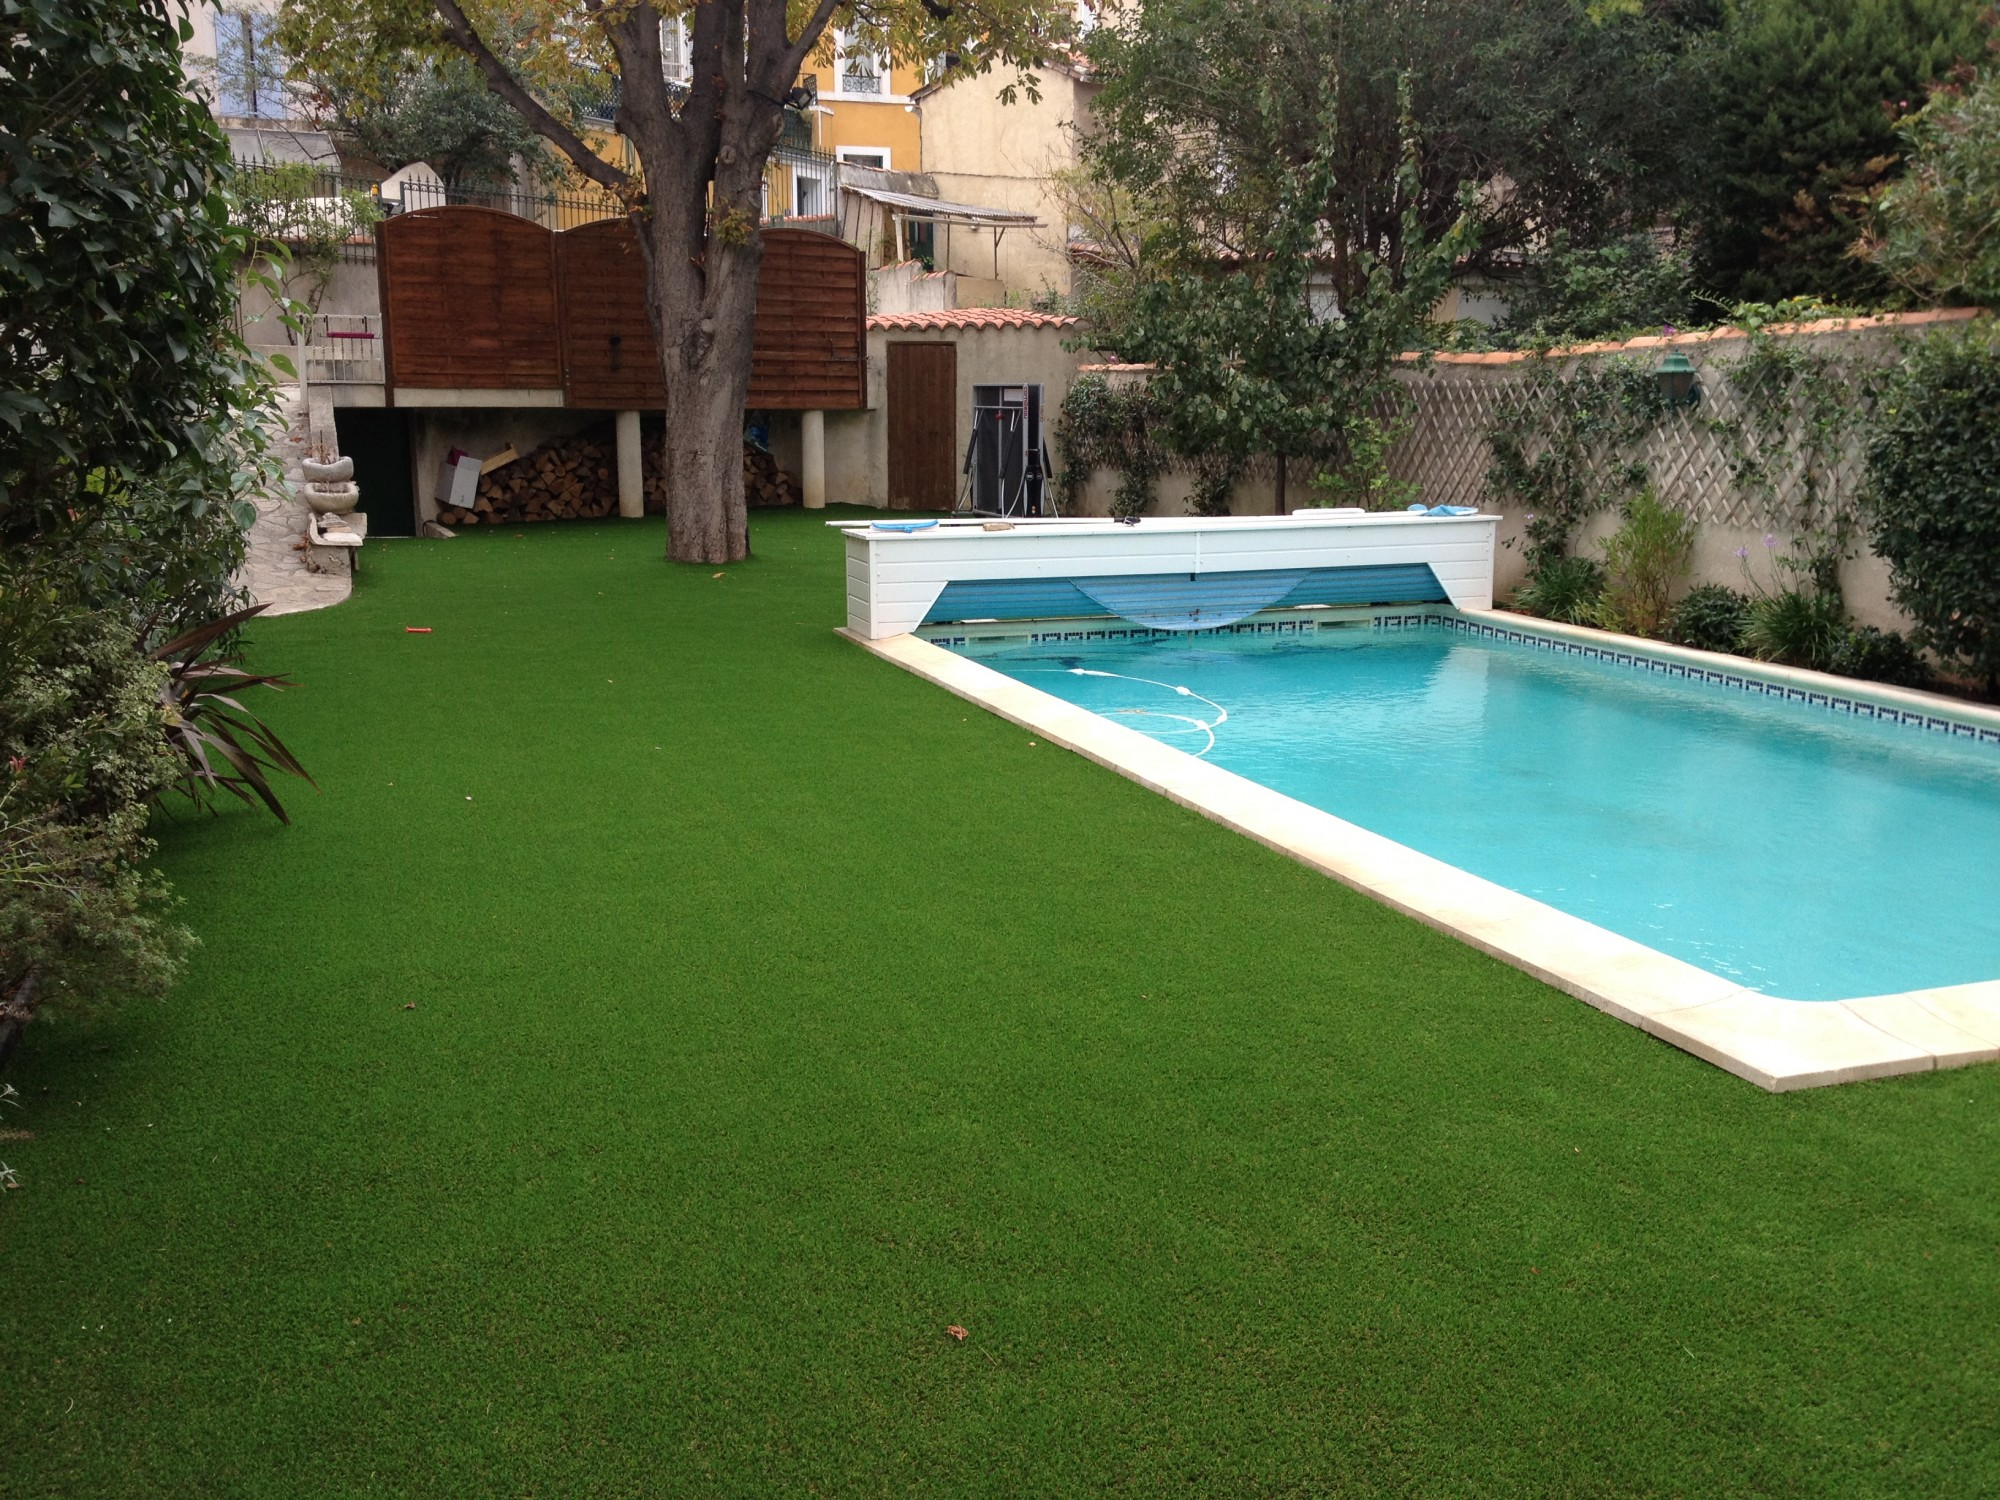 Amenagement piscine gazon synthetique - Amenagement autour piscine photos ...